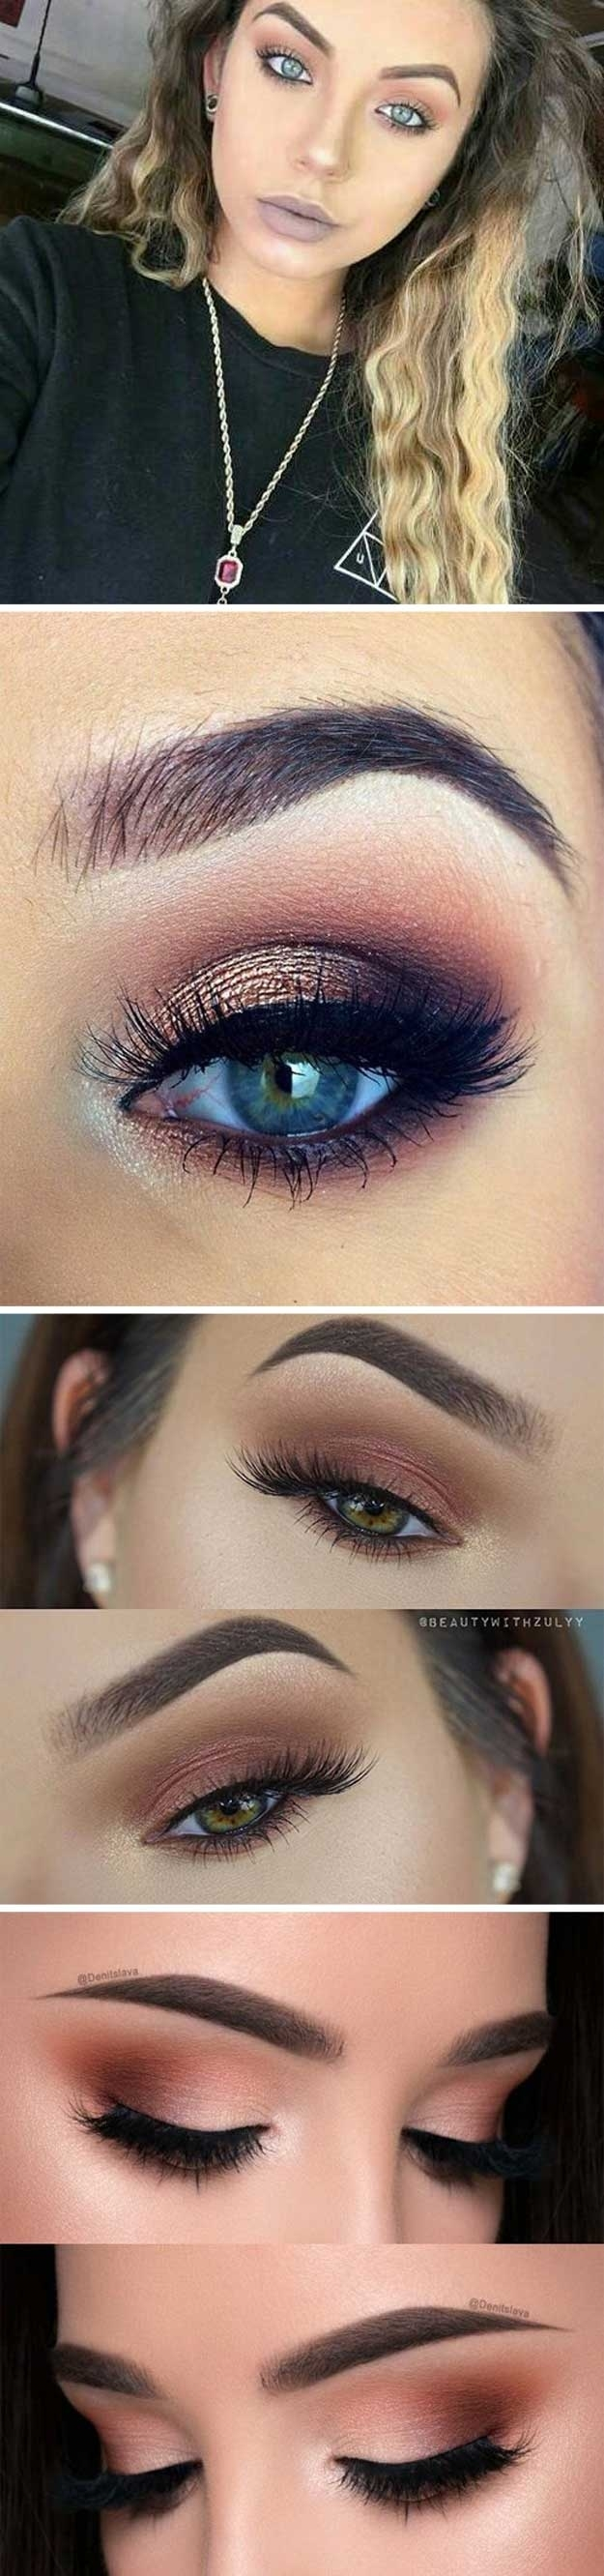 35 Wedding Makeup For Blue Eyes - The Goddess with regard to Eyeshadow Color For Blue Eyes And Brown Hair